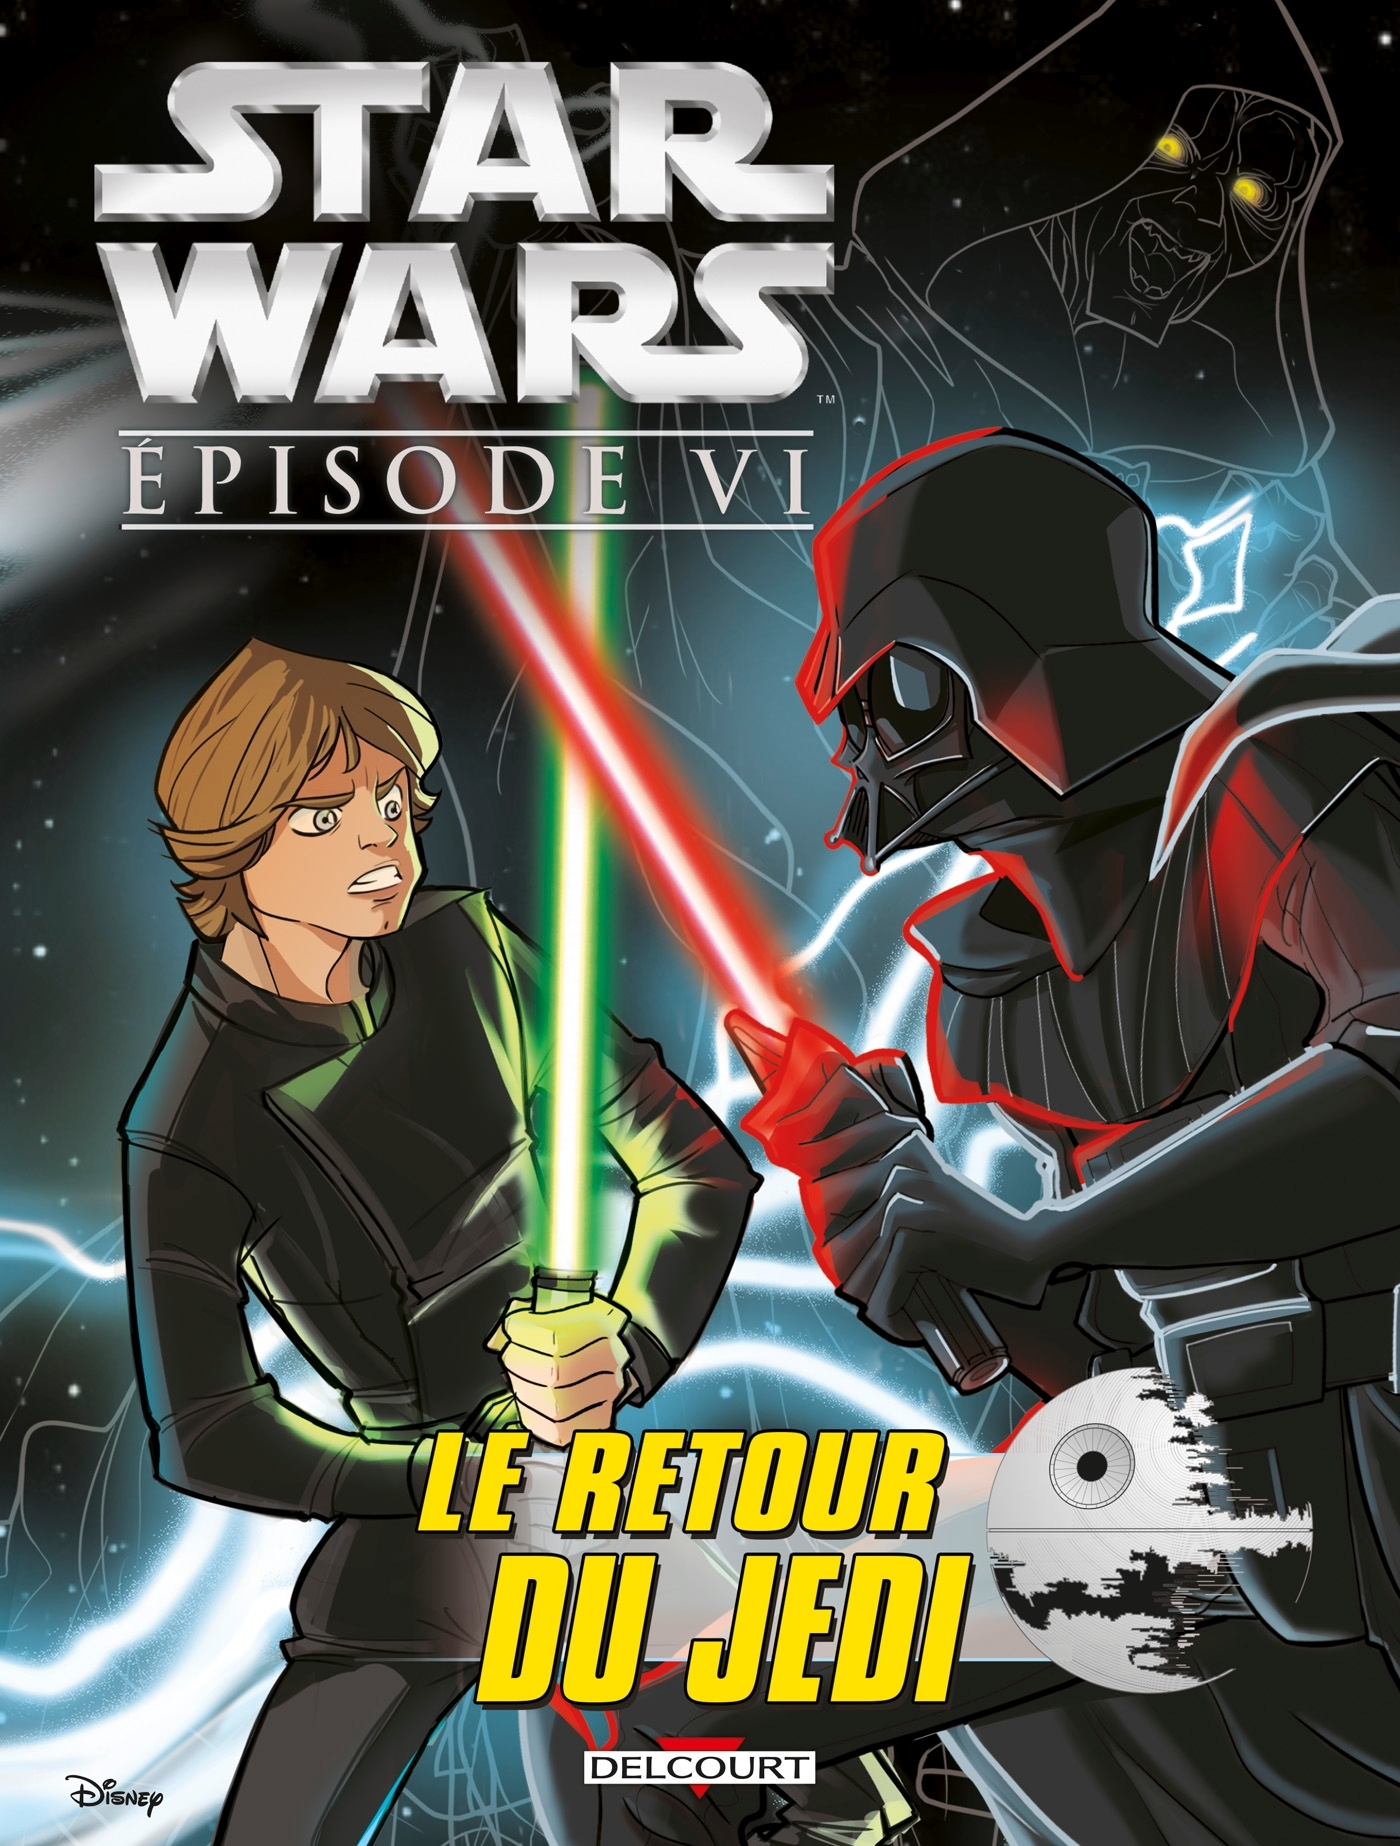 STAR WARS EPISODE VI - LE RETOUR DU JEDI